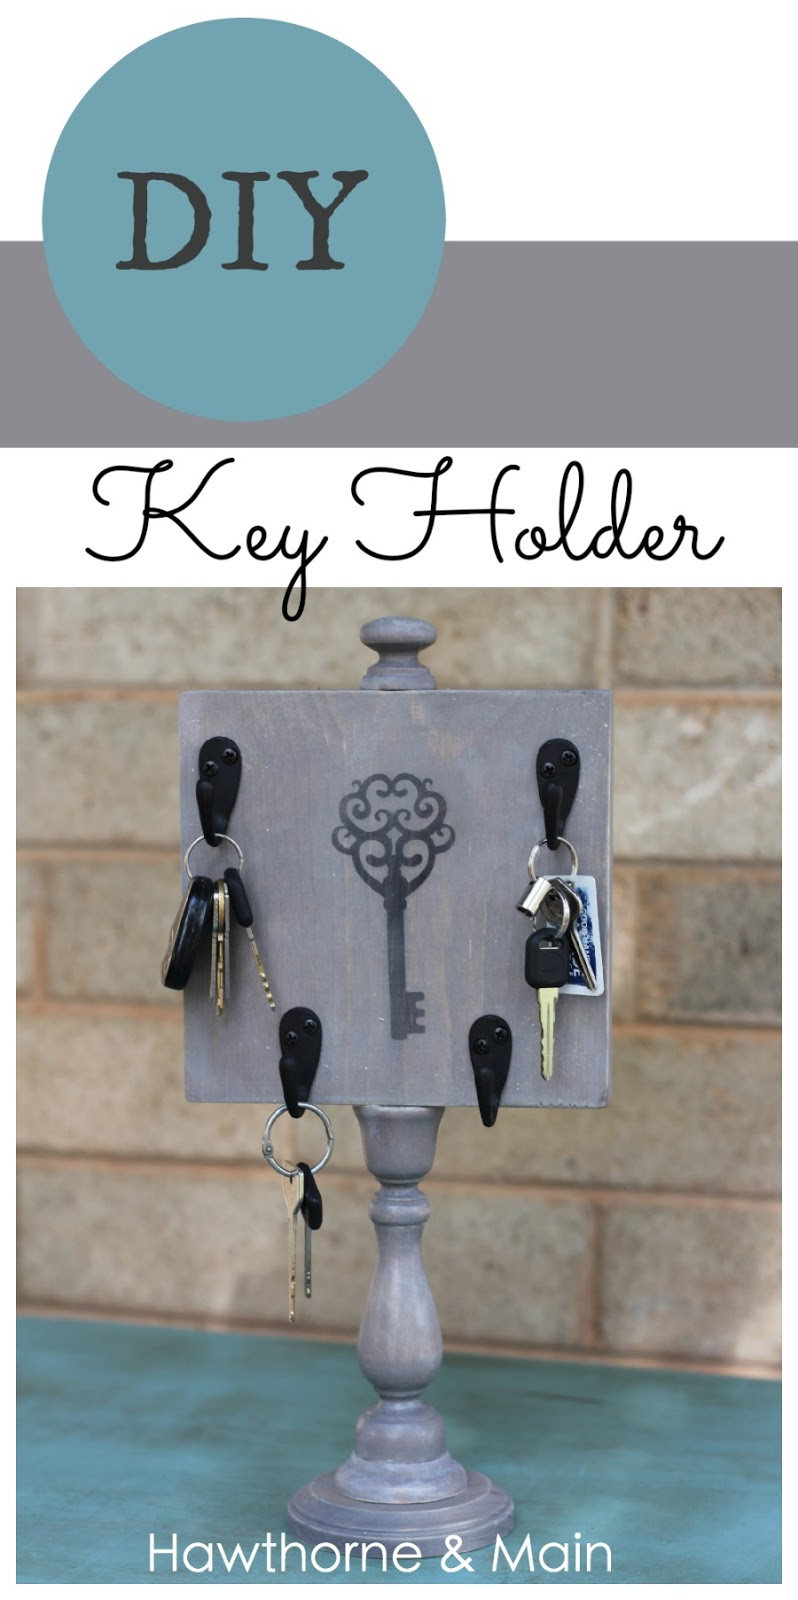 DIY Key Holder - HAWTHORNE AND MAIN